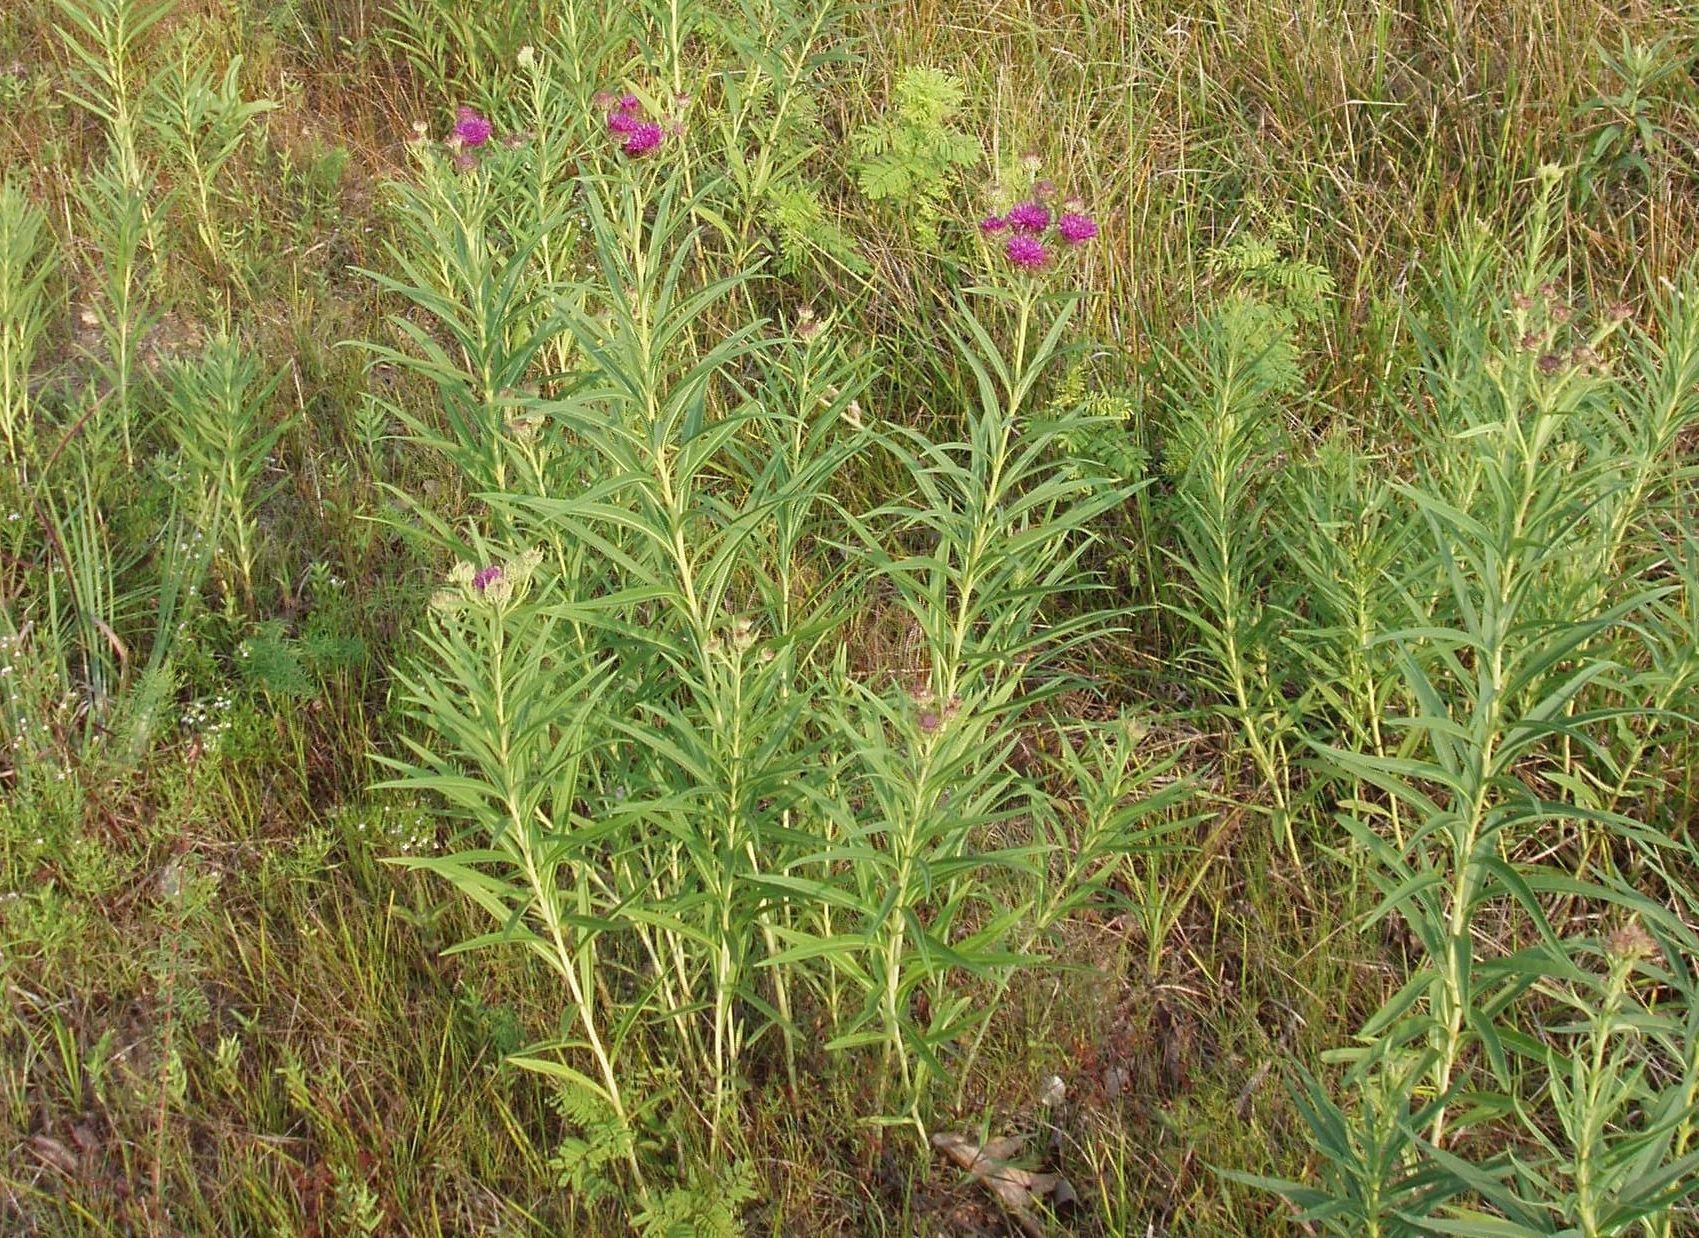 "{""blocks"":[{""key"":""cbnvb"",""text"":""Vernonia baldwinii Western Ironweed -  potted plants email john@easywildflowers.com "",""type"":""unstyled"",""depth"":0,""inlineStyleRanges"":[],""entityRanges"":[],""data"":{}}],""entityMap"":{}}"